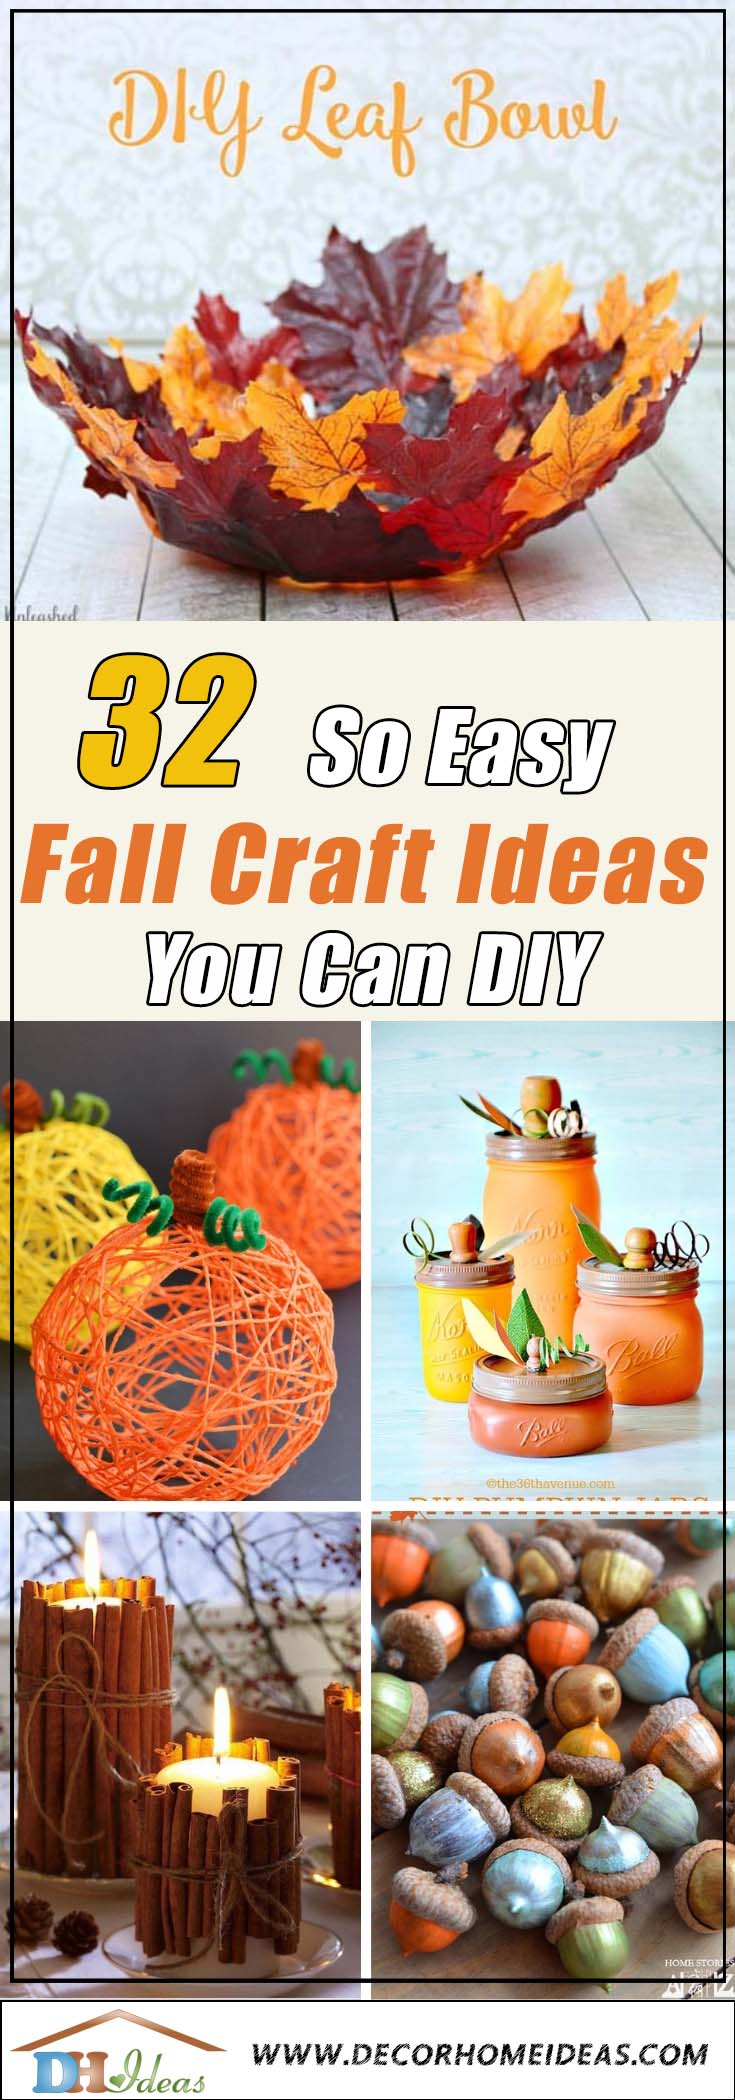 32 Easy Fall Craft Ideas #crafts #fall #falldecor #falldecorideas #decorhomeideas